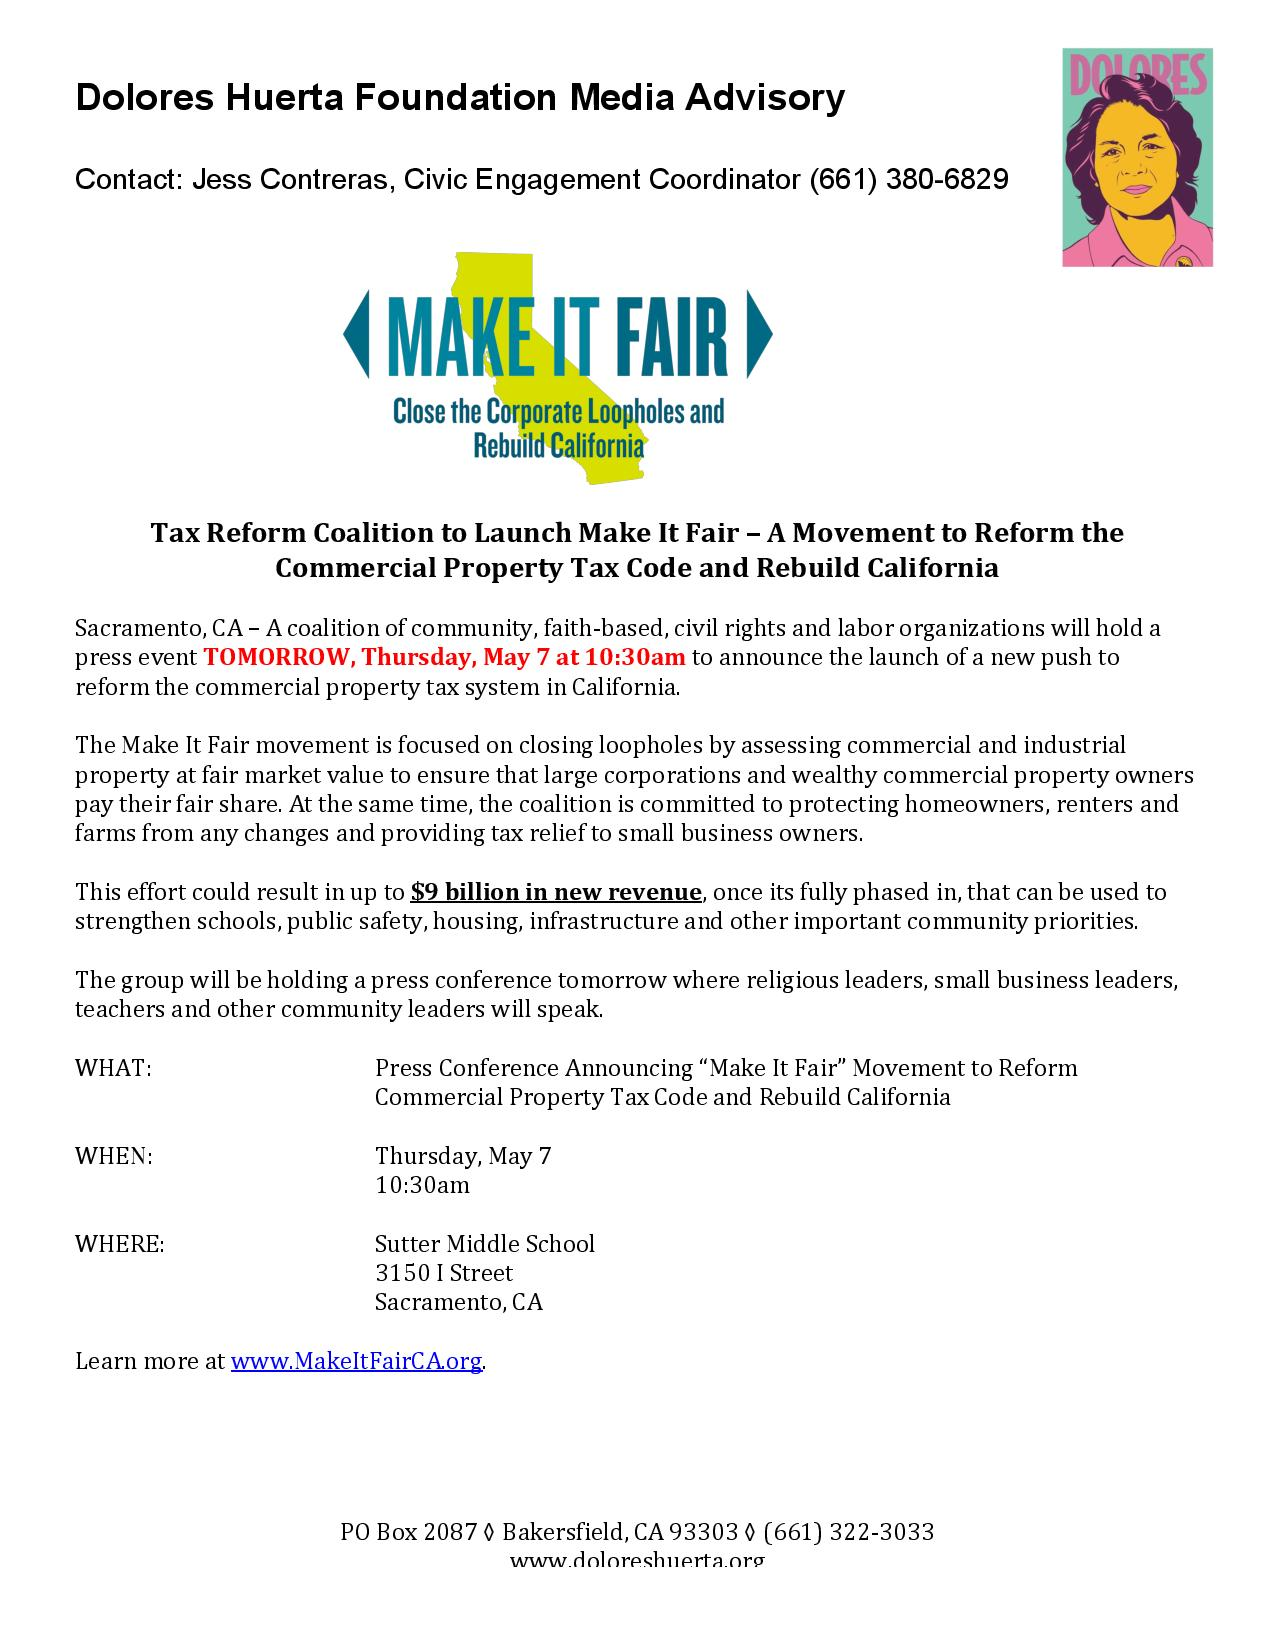 Media Advisory: Make It Fair Launch 5-7-15